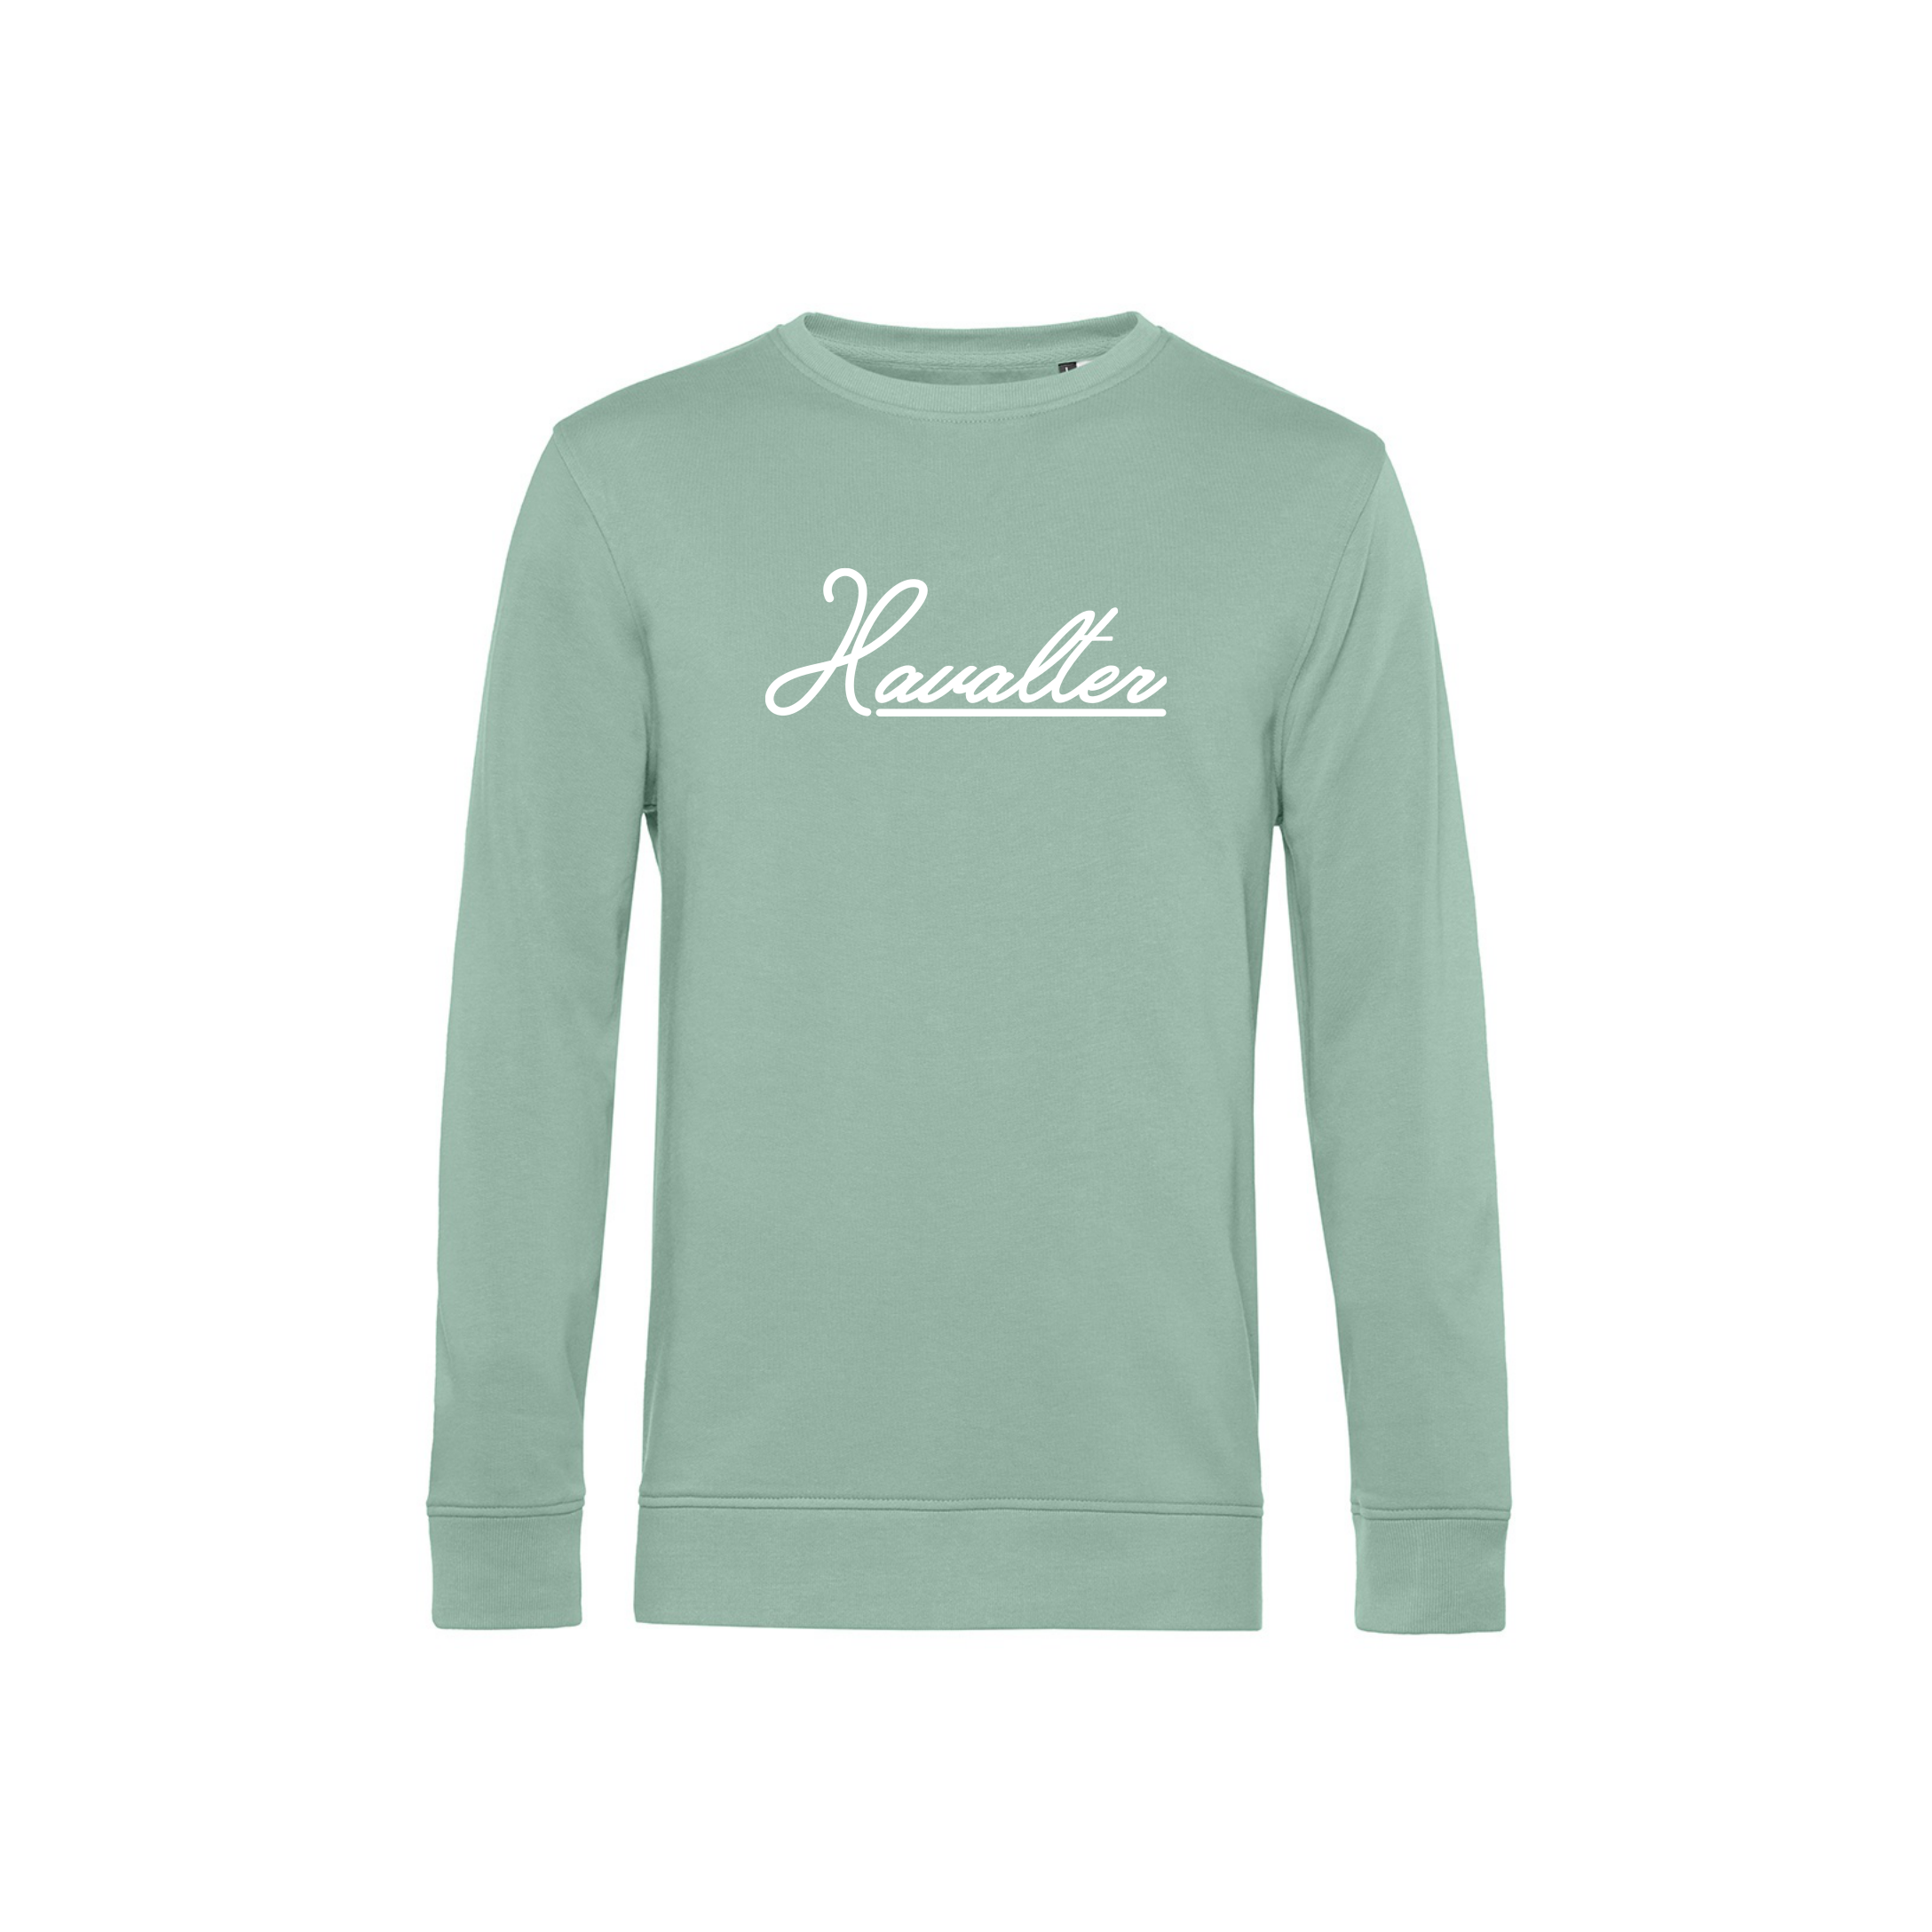 Havalter Sweater Mint Basic Logo, Unisex